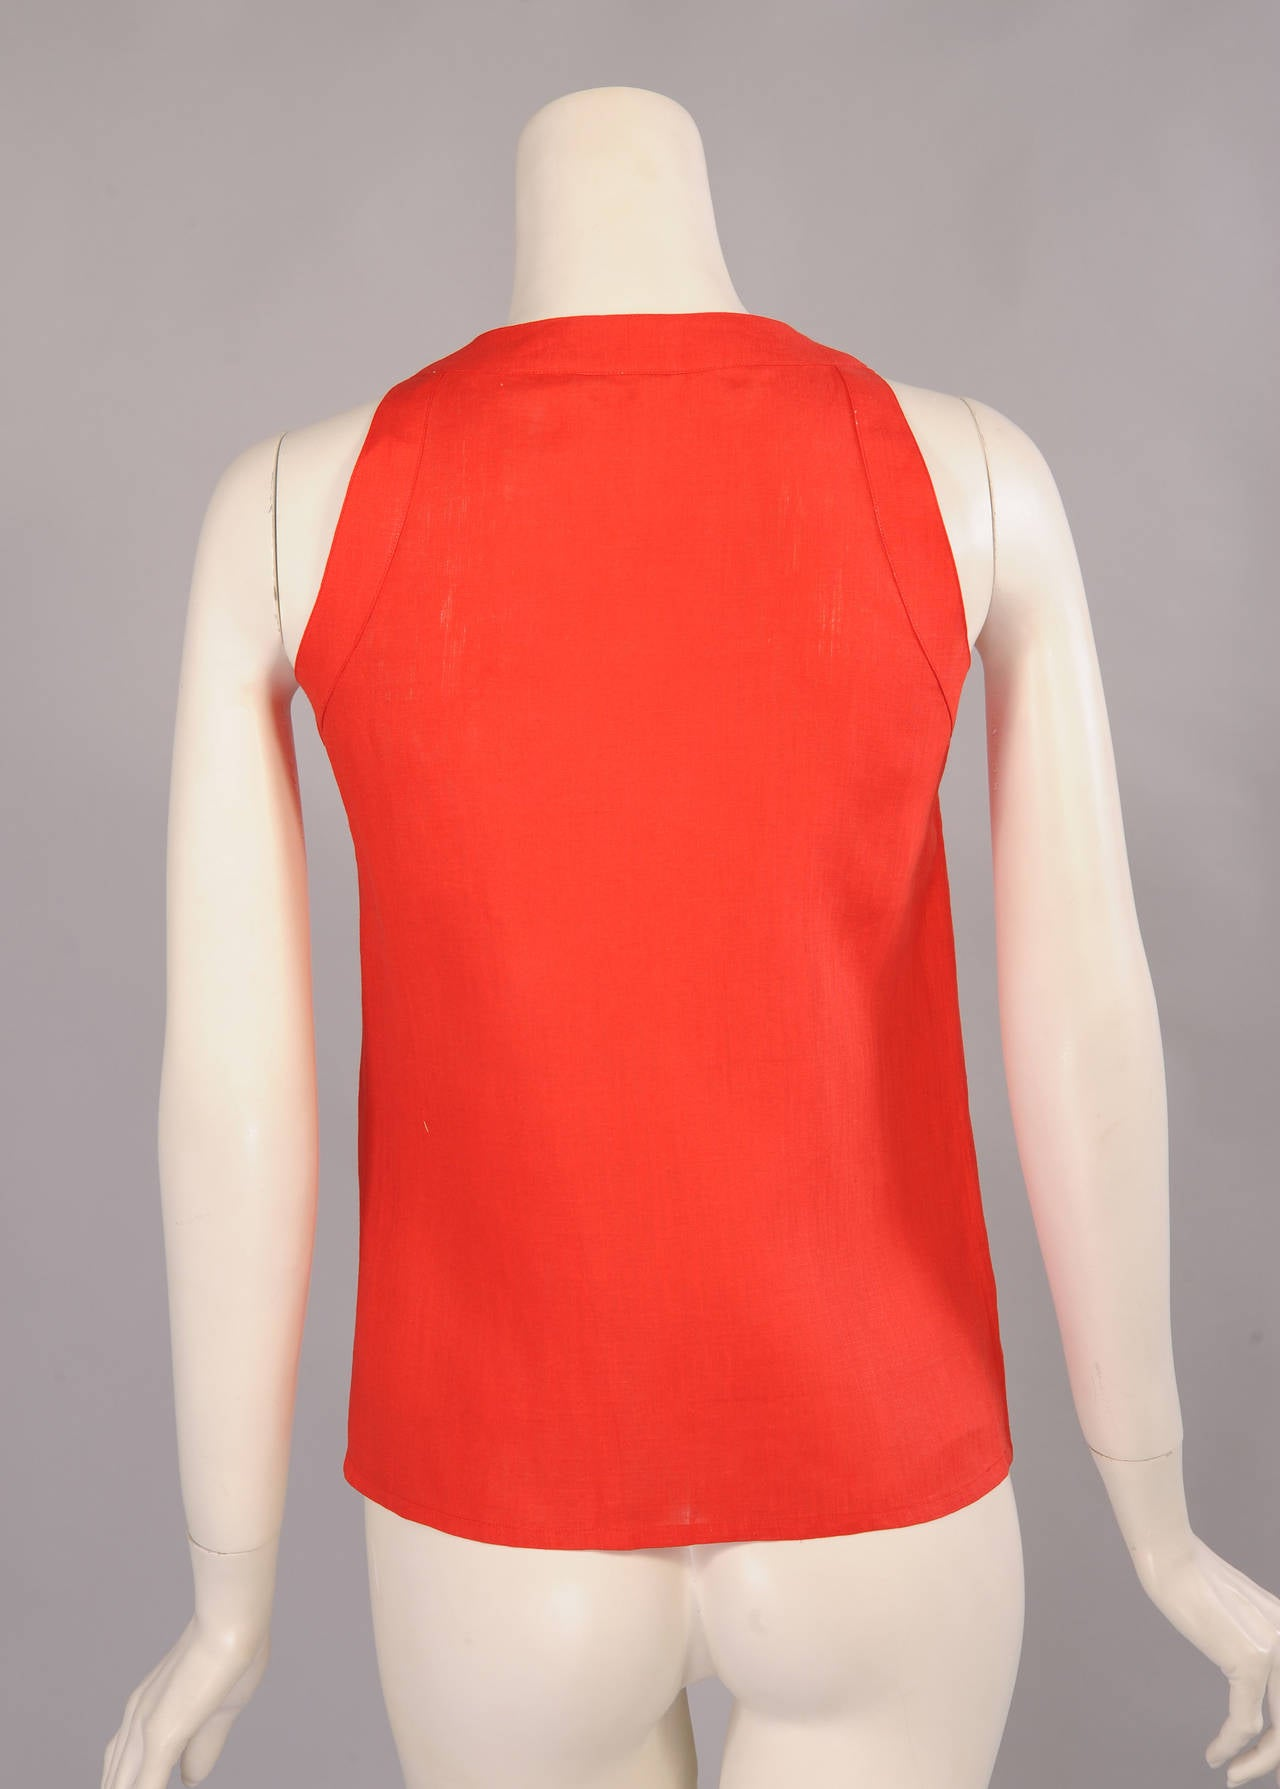 Bright red linen is pleated on either side of the covered button front of the sleeveless and collarless blouse from Chanel. It is in excellent condition.